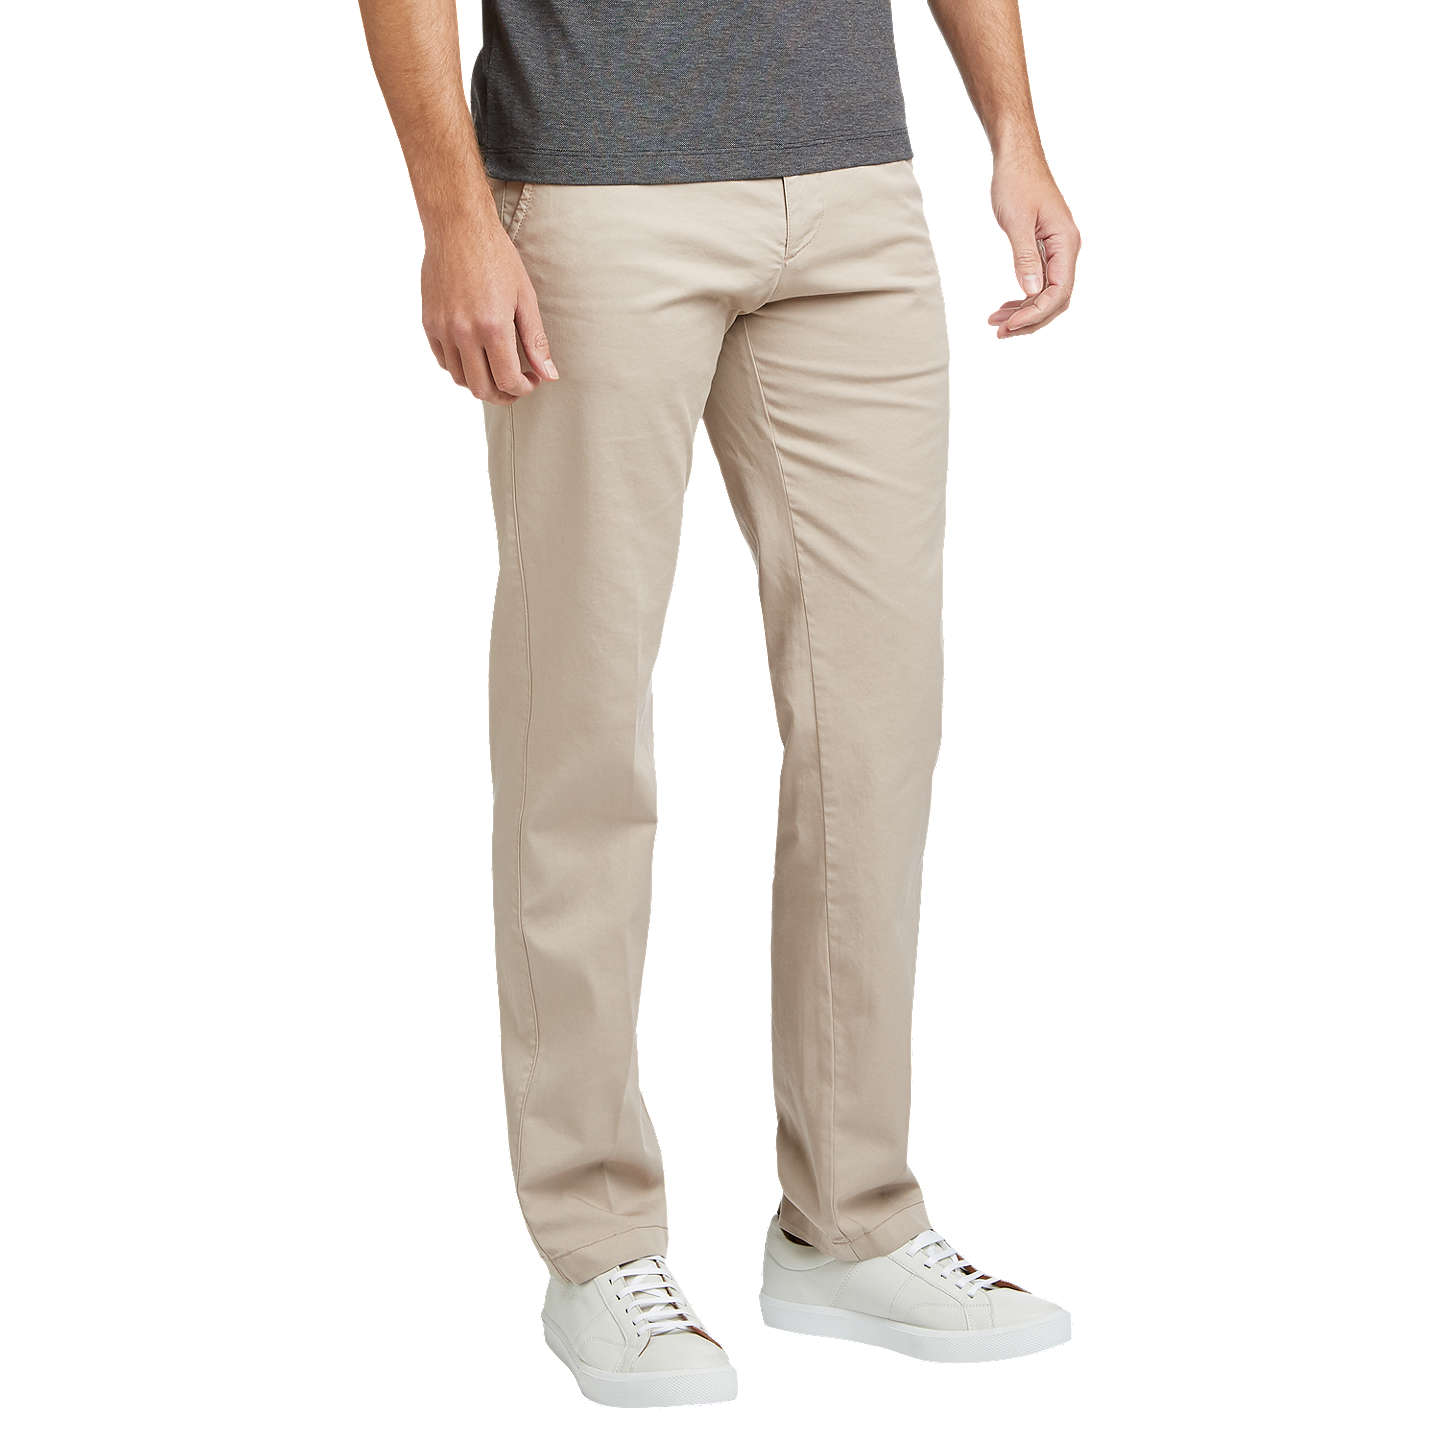 BuyBOSS Crigan3-D Tapered Chinos, Open Beige, 30R Online at johnlewis.com